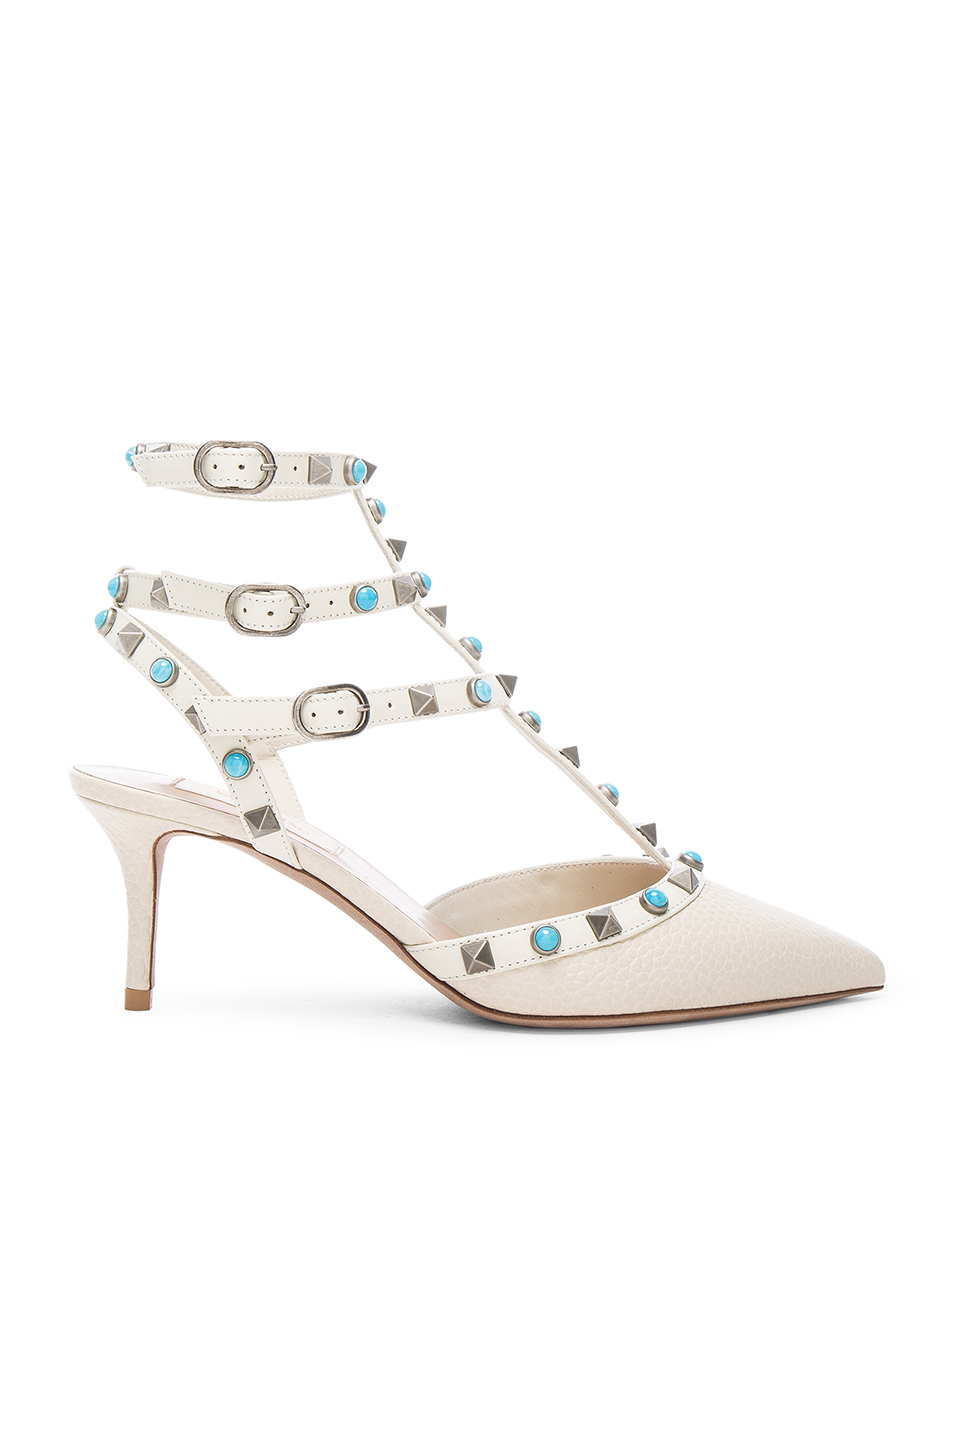 Valentino Rockstud Leather Rolling Heels in White